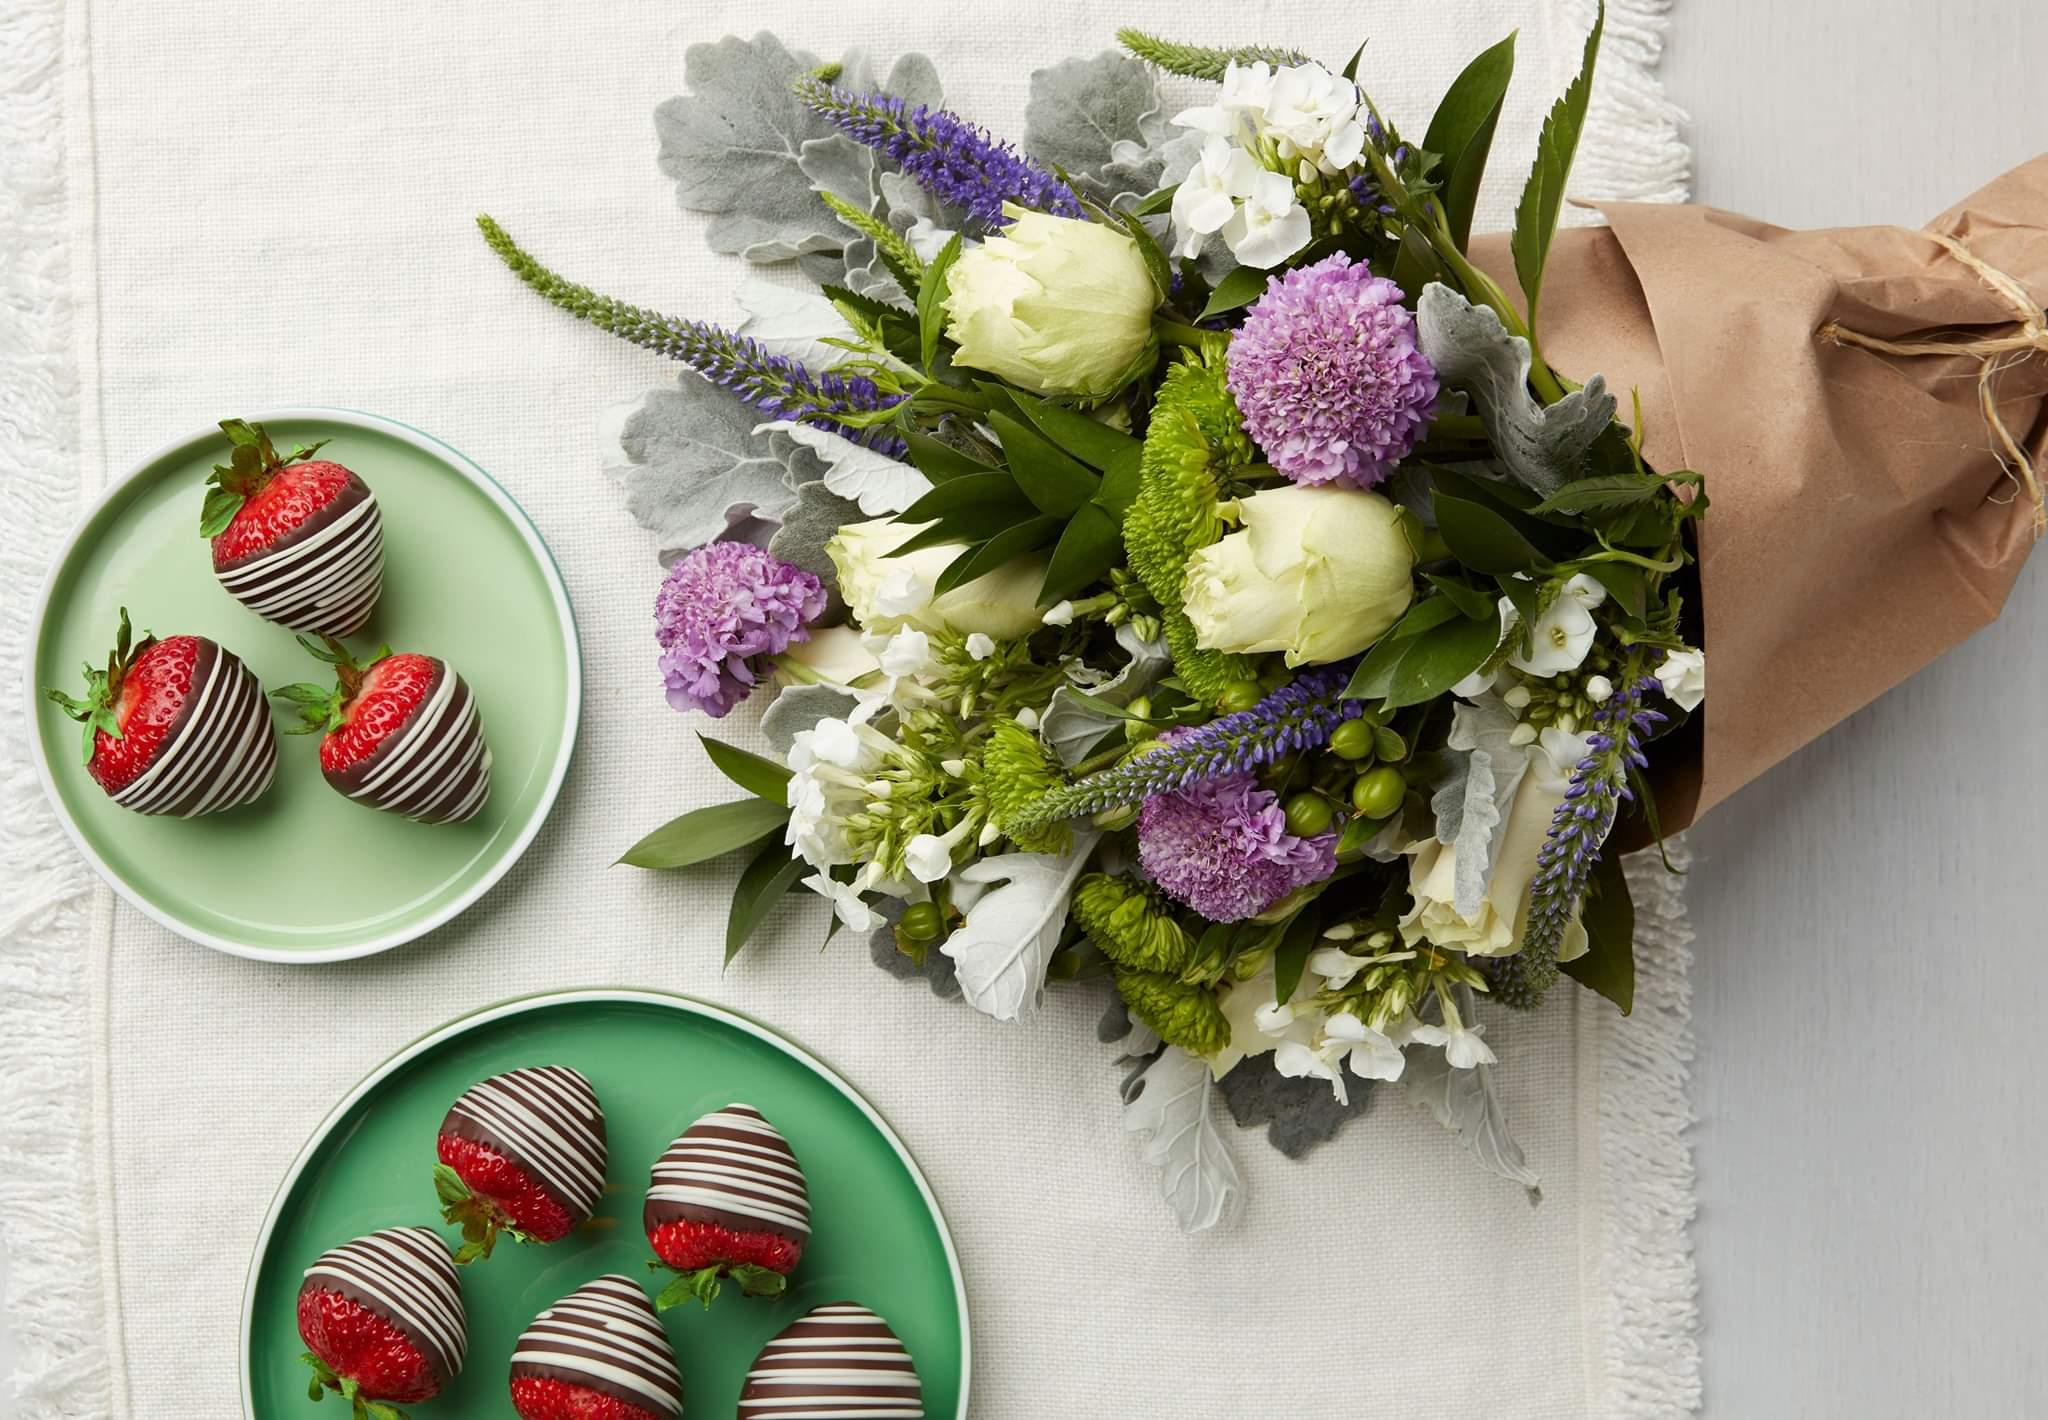 Edible Arrangement's chocolate-covered strawberries and floral package